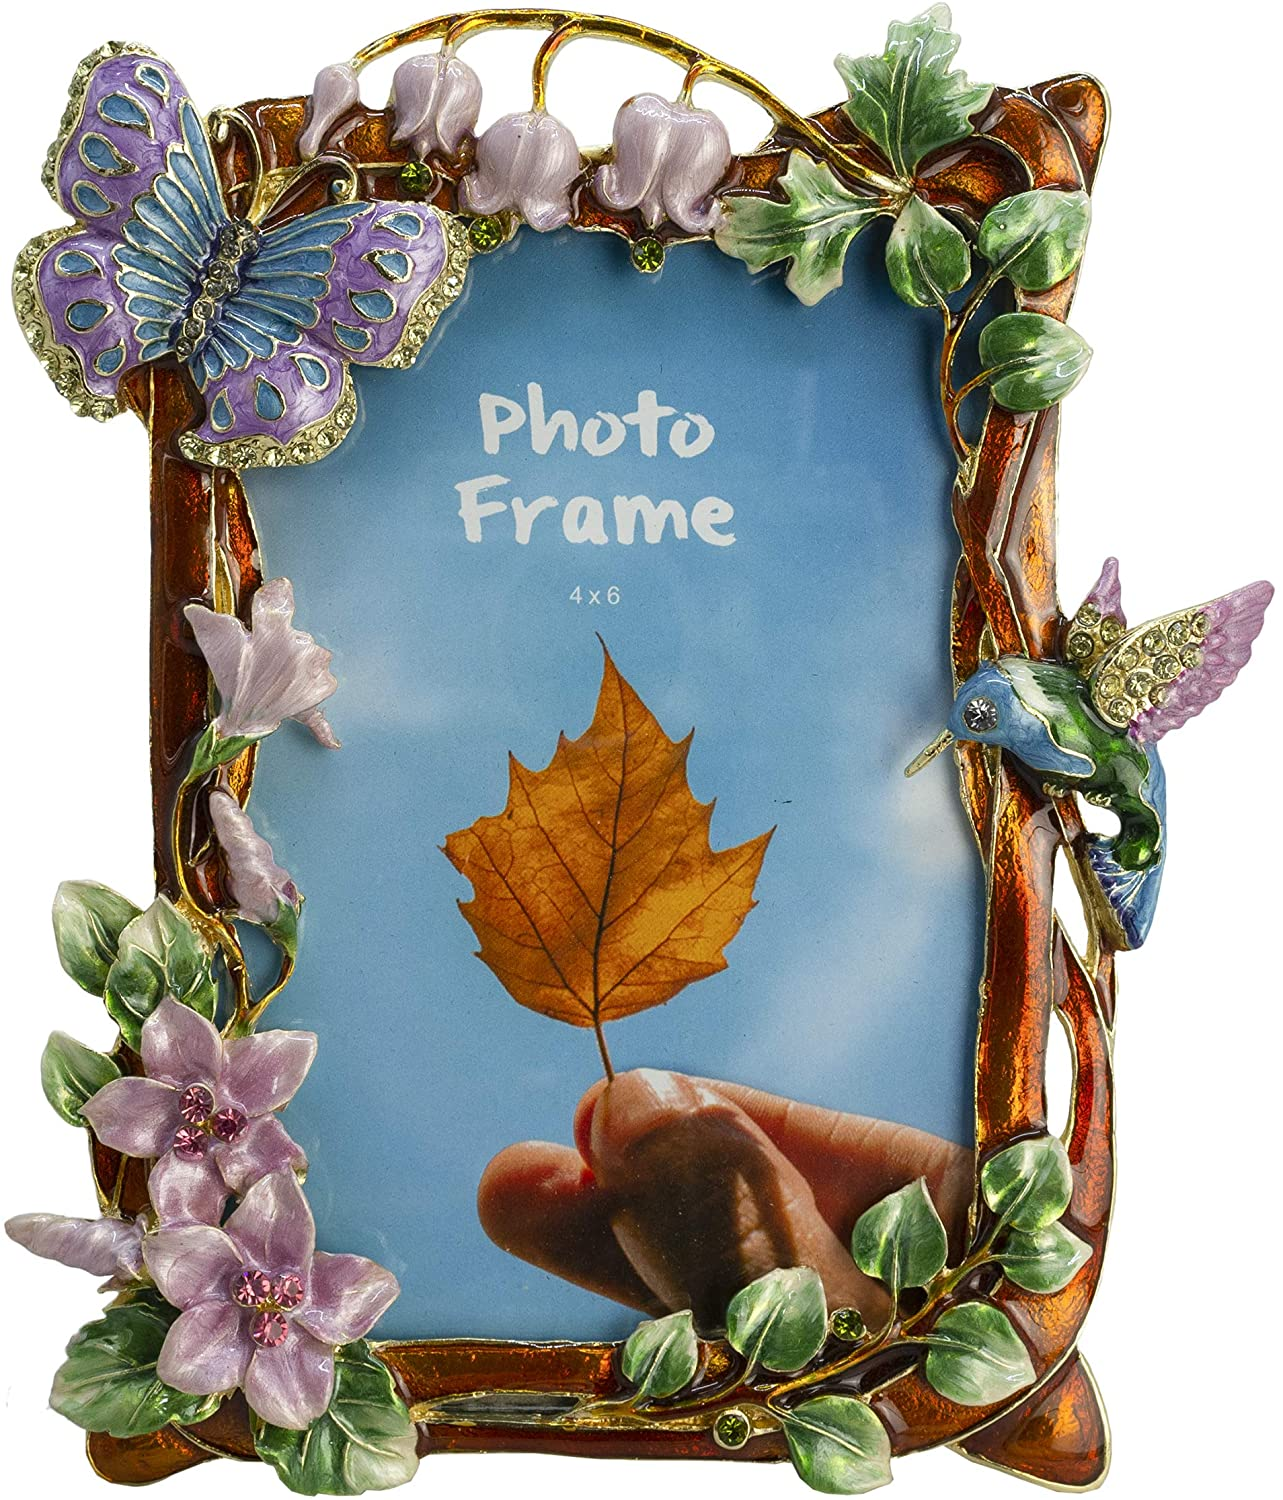 Tricune Picture Frame 4x6, Vintage Photo Frame Made of Pewter Metal and High Definition Glass for Table Top Display Home Decor, Retro Photo Frame